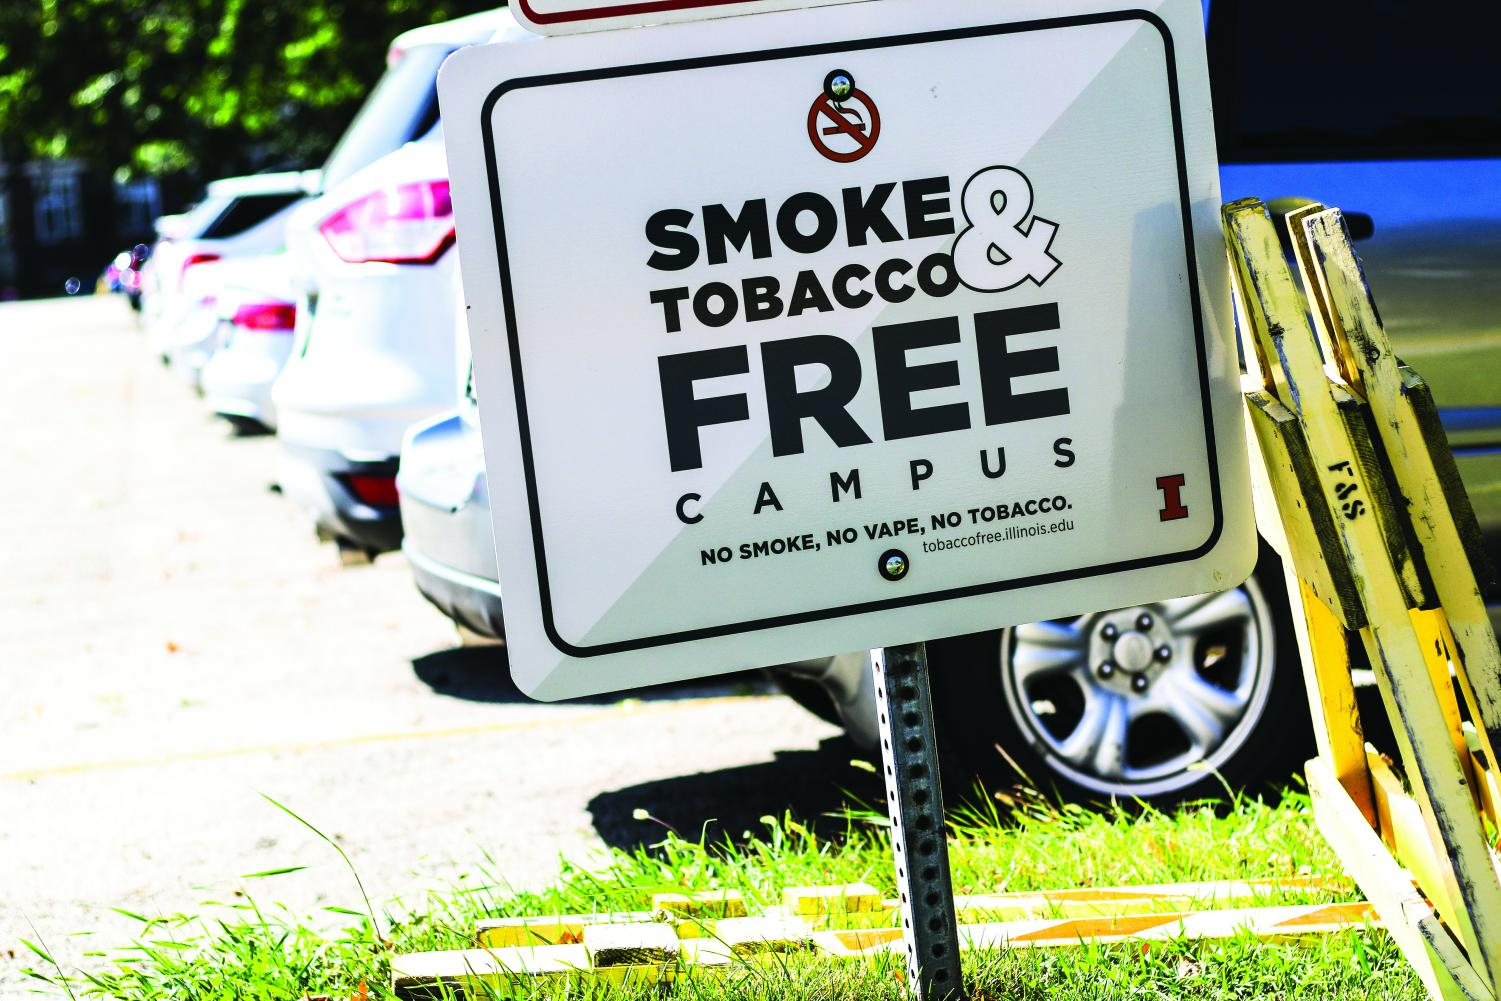 A smoke-free campus sign is displayed in parking lot E2 by the Architecture Building on Aug. 28. To combat the rise in popularity of smokeless tobacco products among college students, the University has revised its campus policy to include all tobacco products and vaping devices.